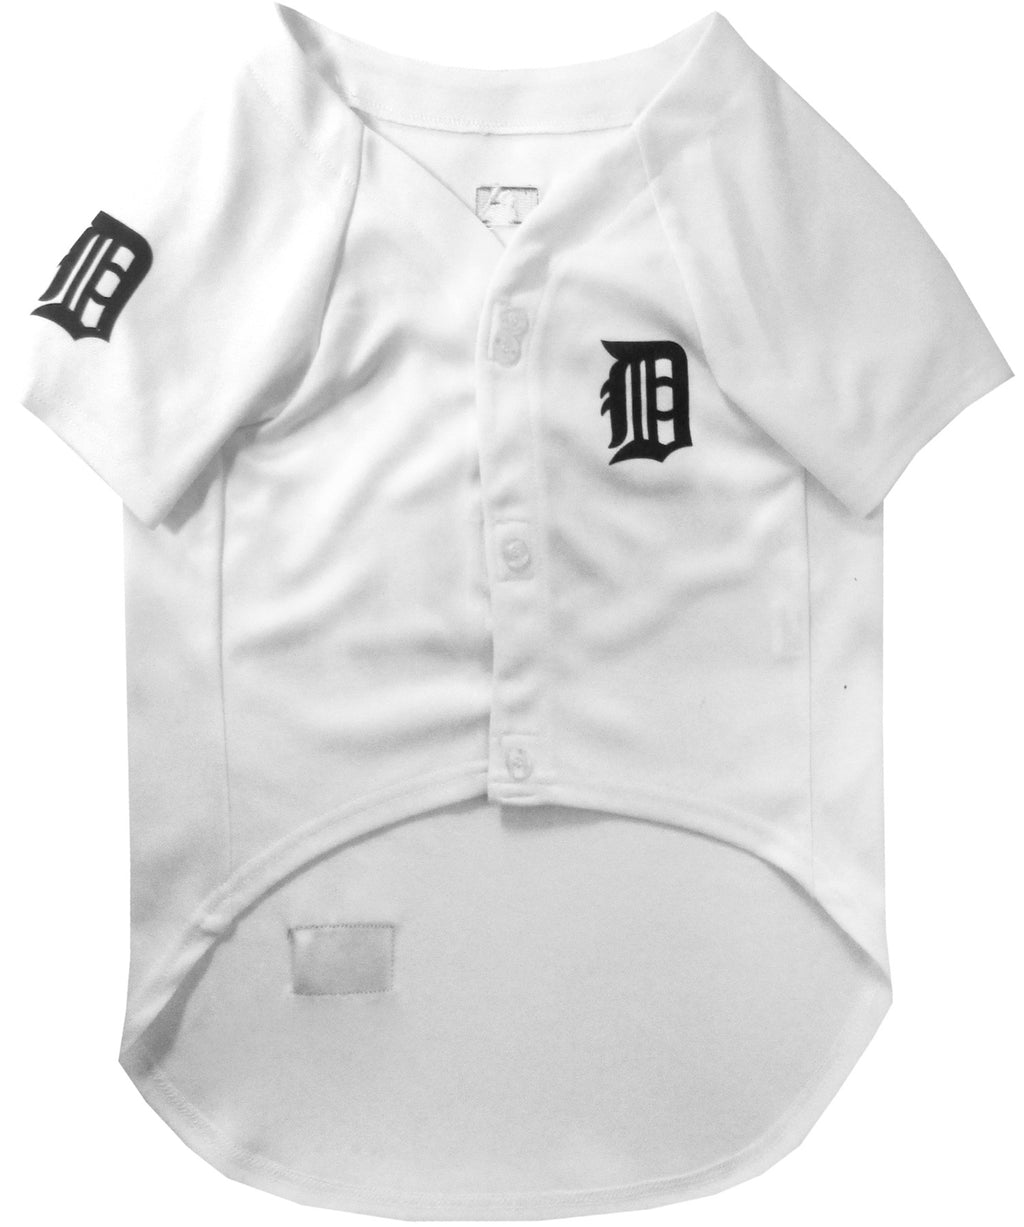 DETROIT TIGERS DOG JERSEY, MLB - Bones Bizzness